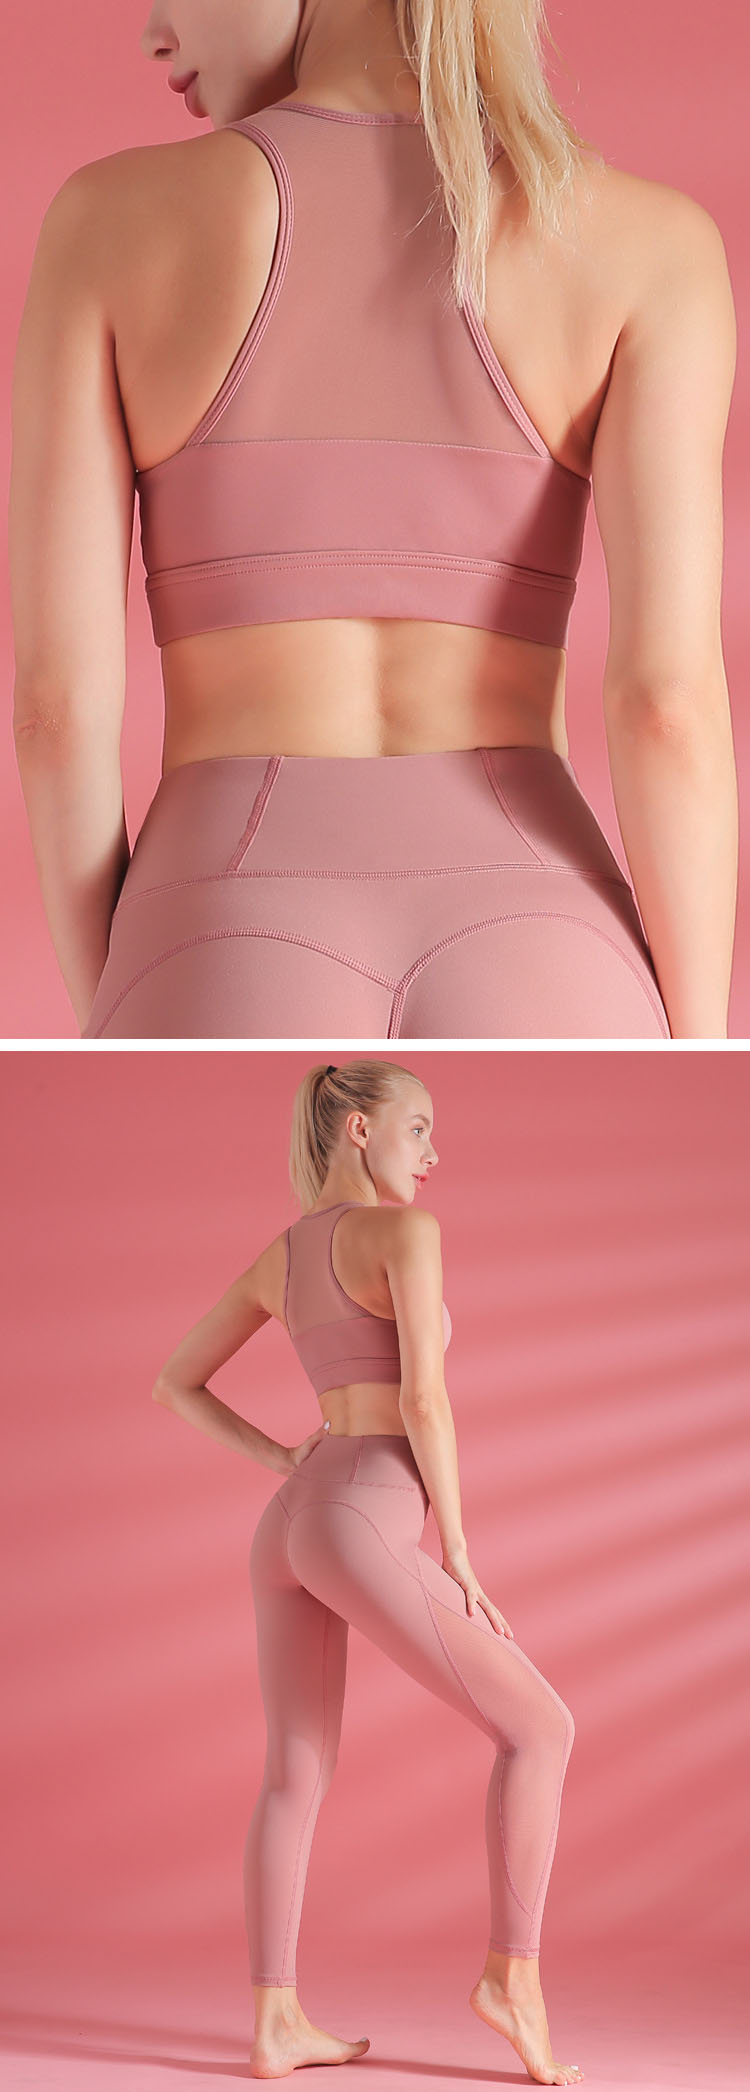 X-shaped back design, triangular geometric stability, effective shaping.